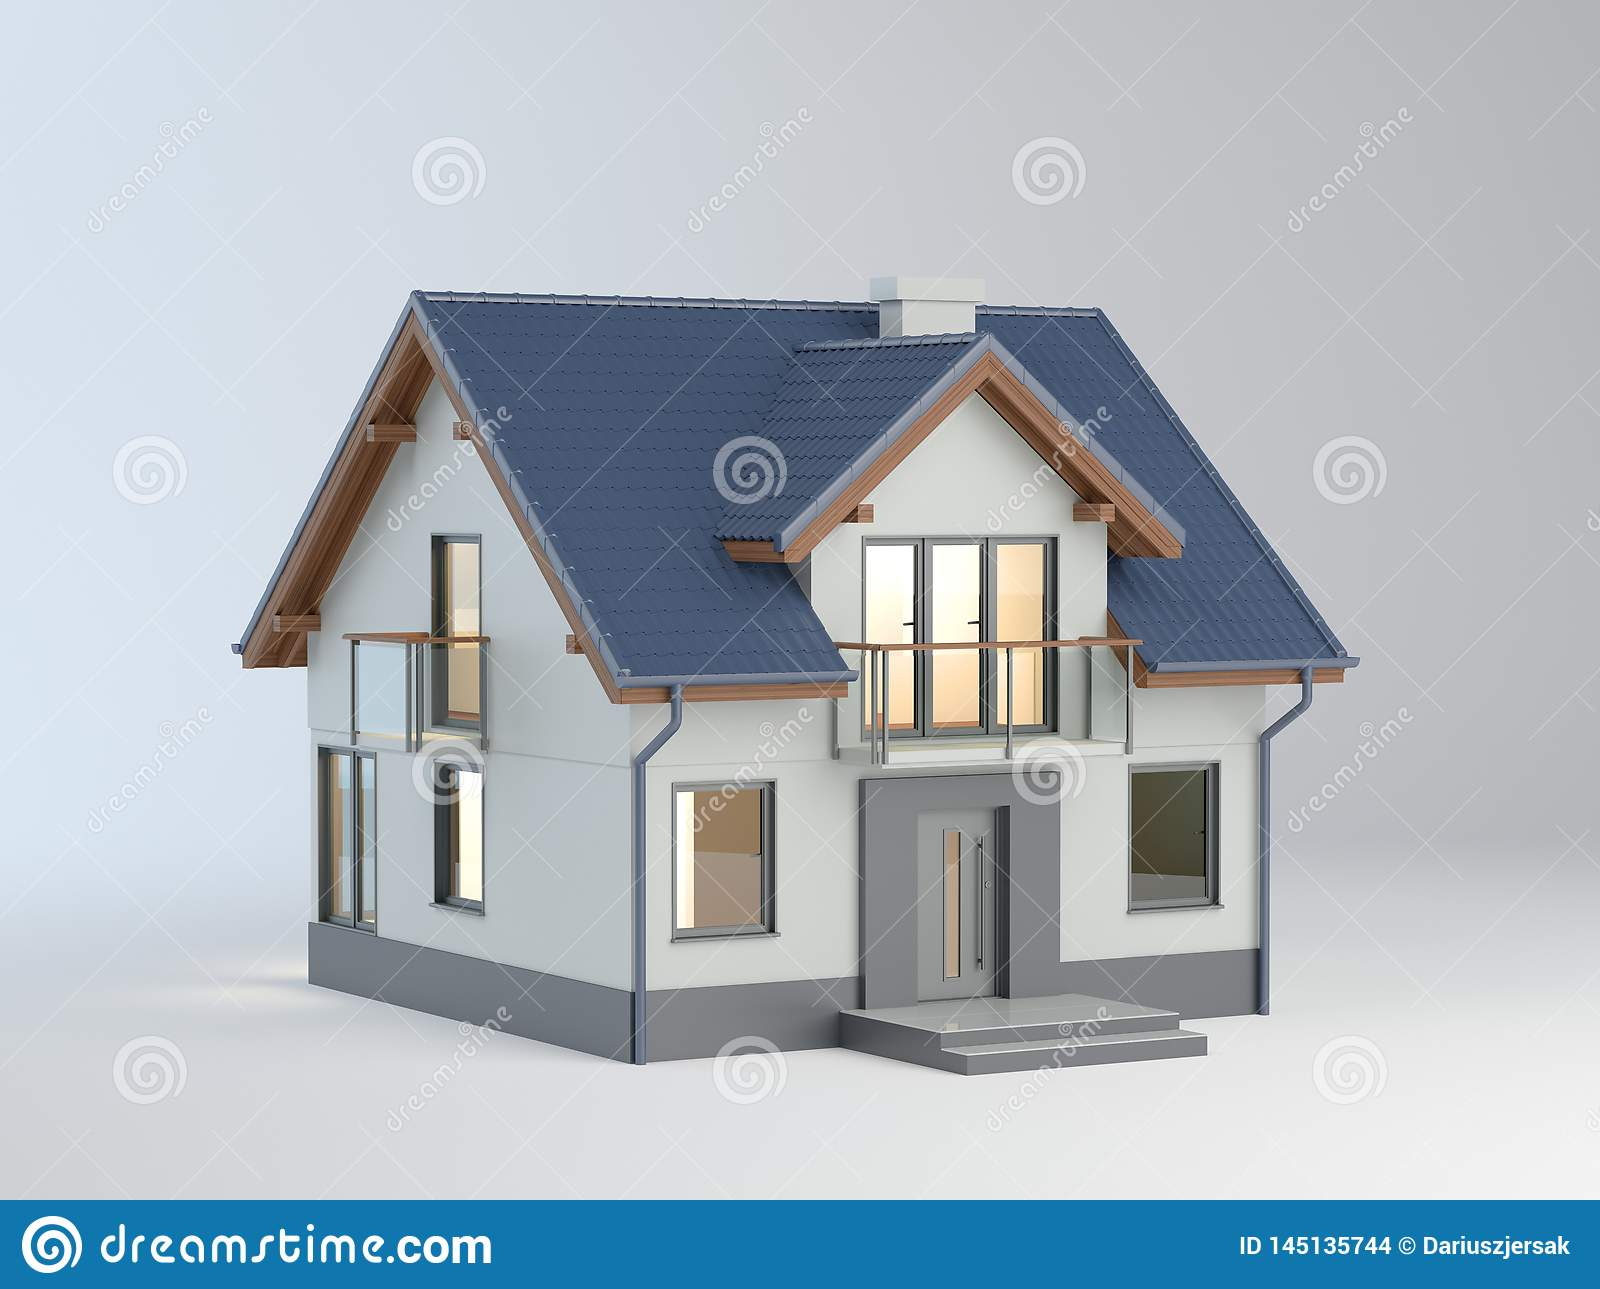 House illustration, 3D illustration